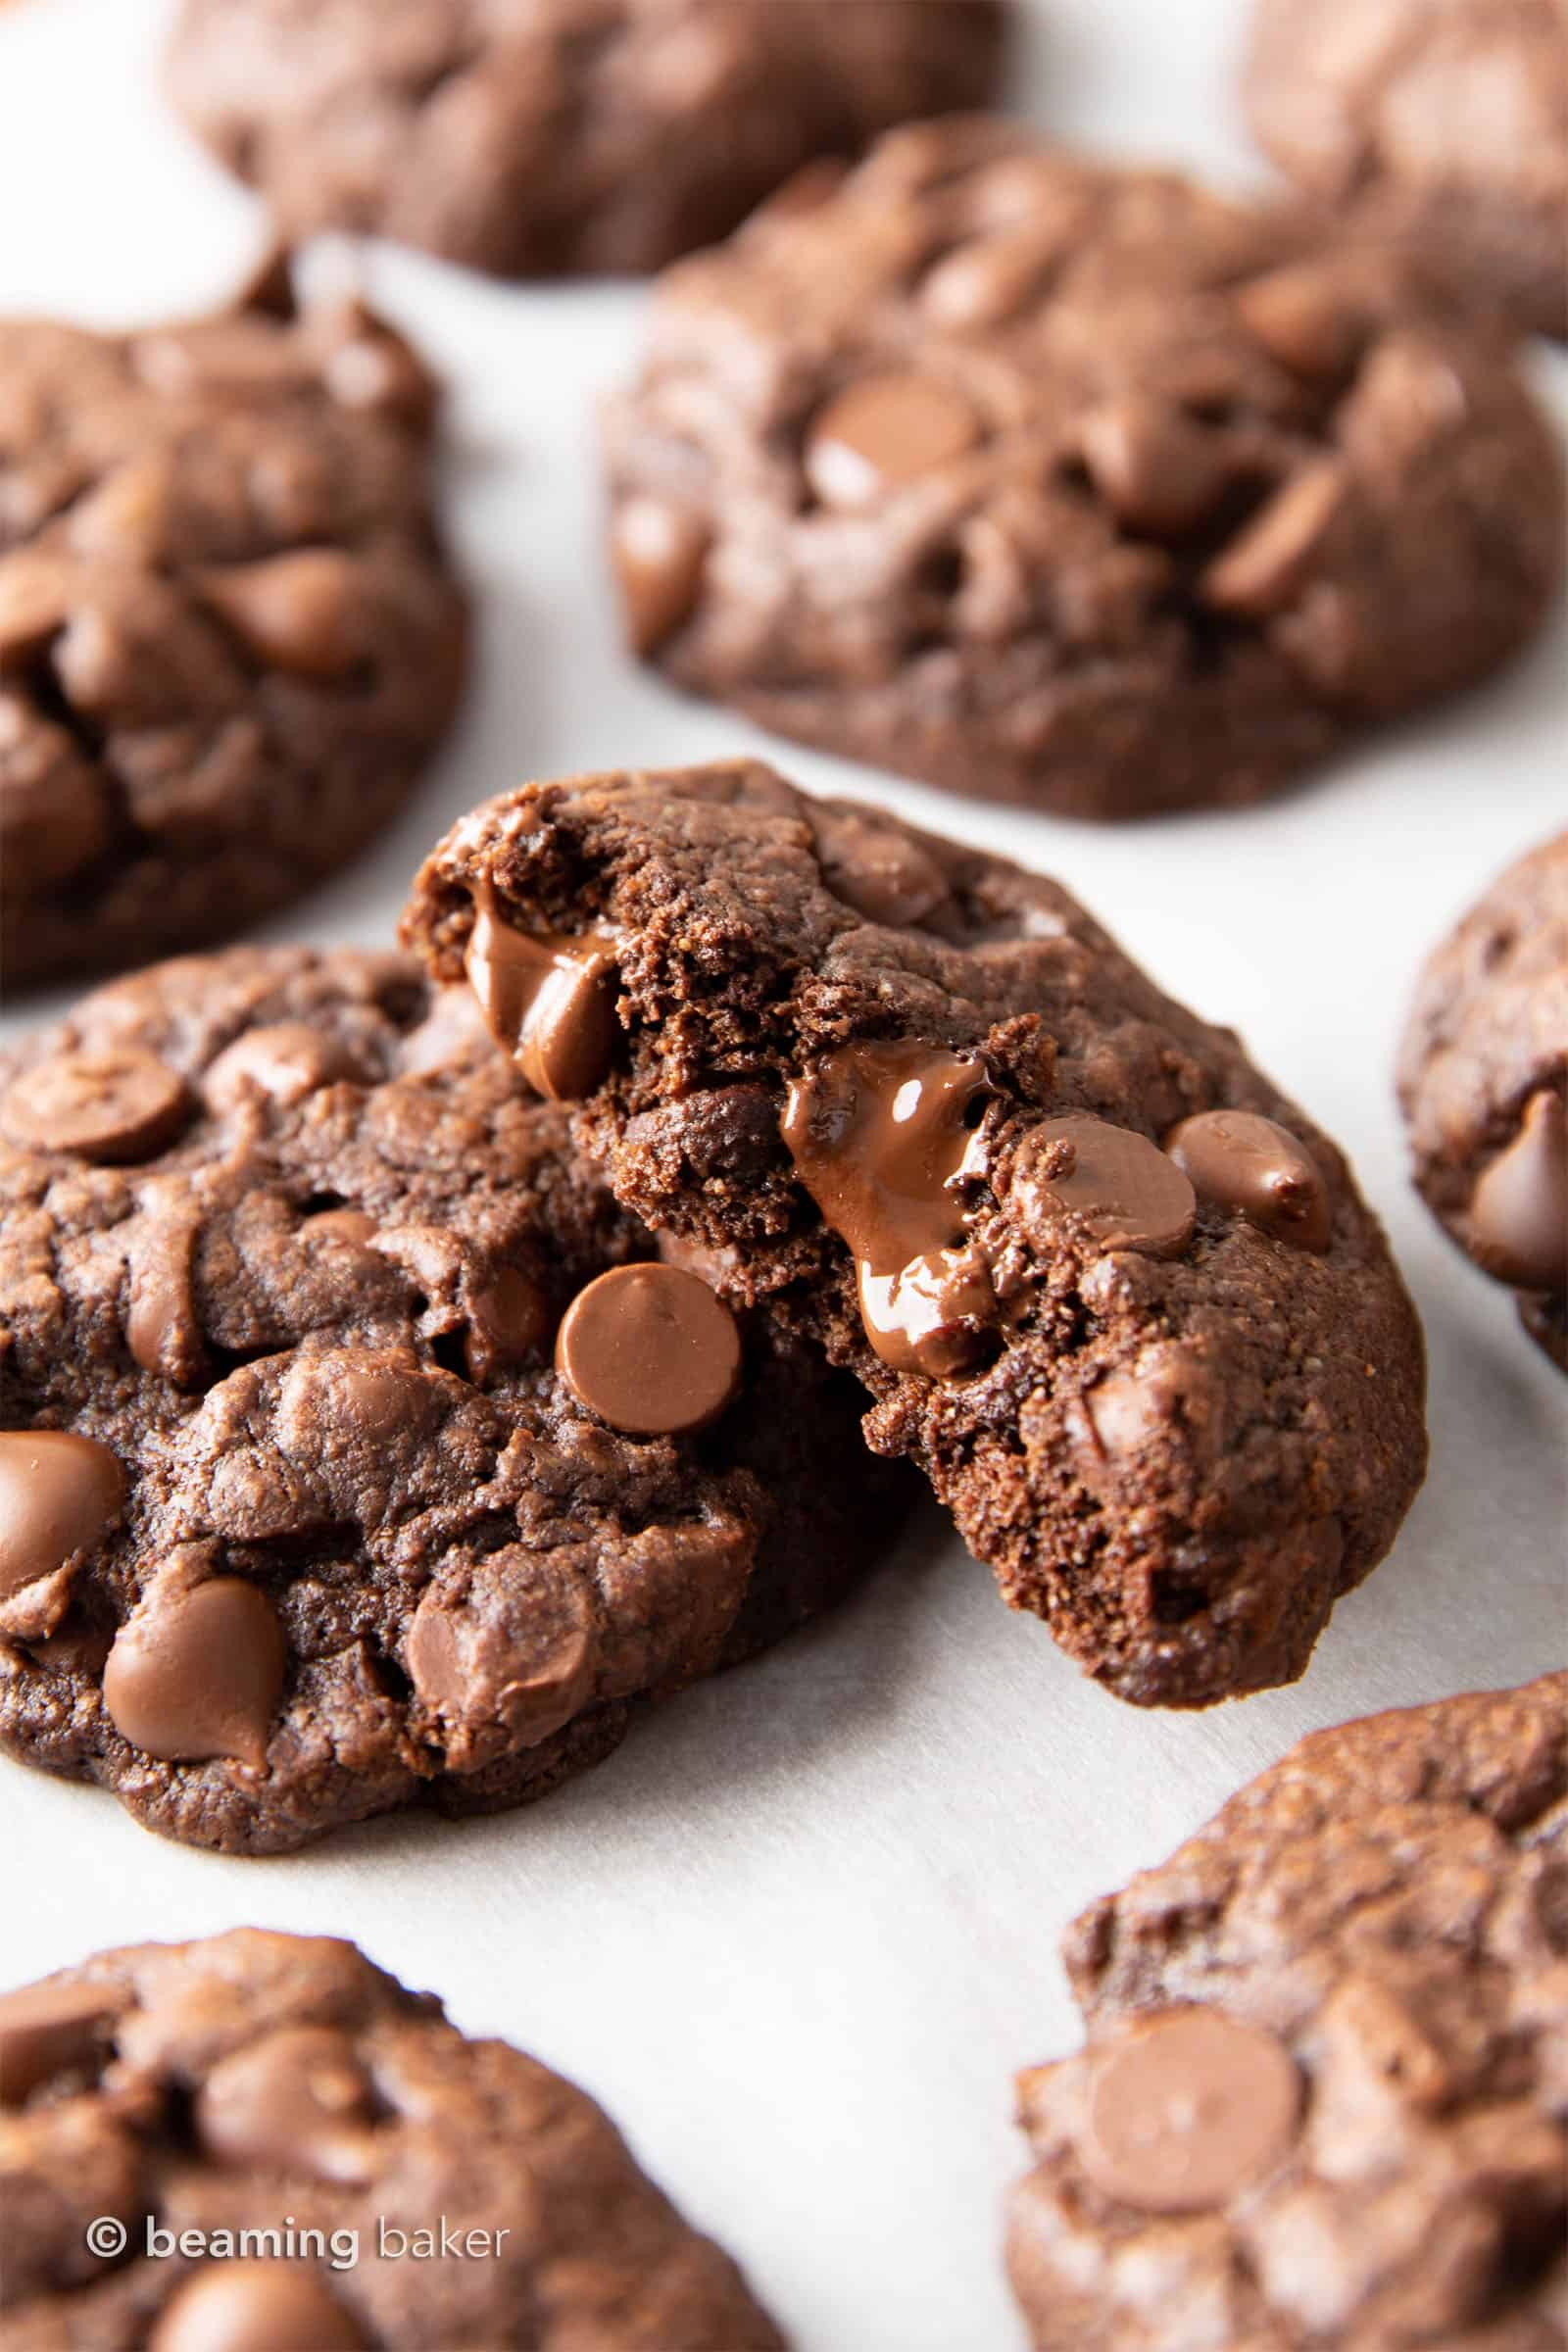 Gluten Free Chocolate Cookies: chewy & moist gluten free brownie cookies with a crispy exterior and LOTS of chocolate packed in! The BEST gluten free chocolate brownie cookie recipe EVER. #Brownies #GlutenFree #Cookies #Vegan | Recipe at BeamingBaker.com